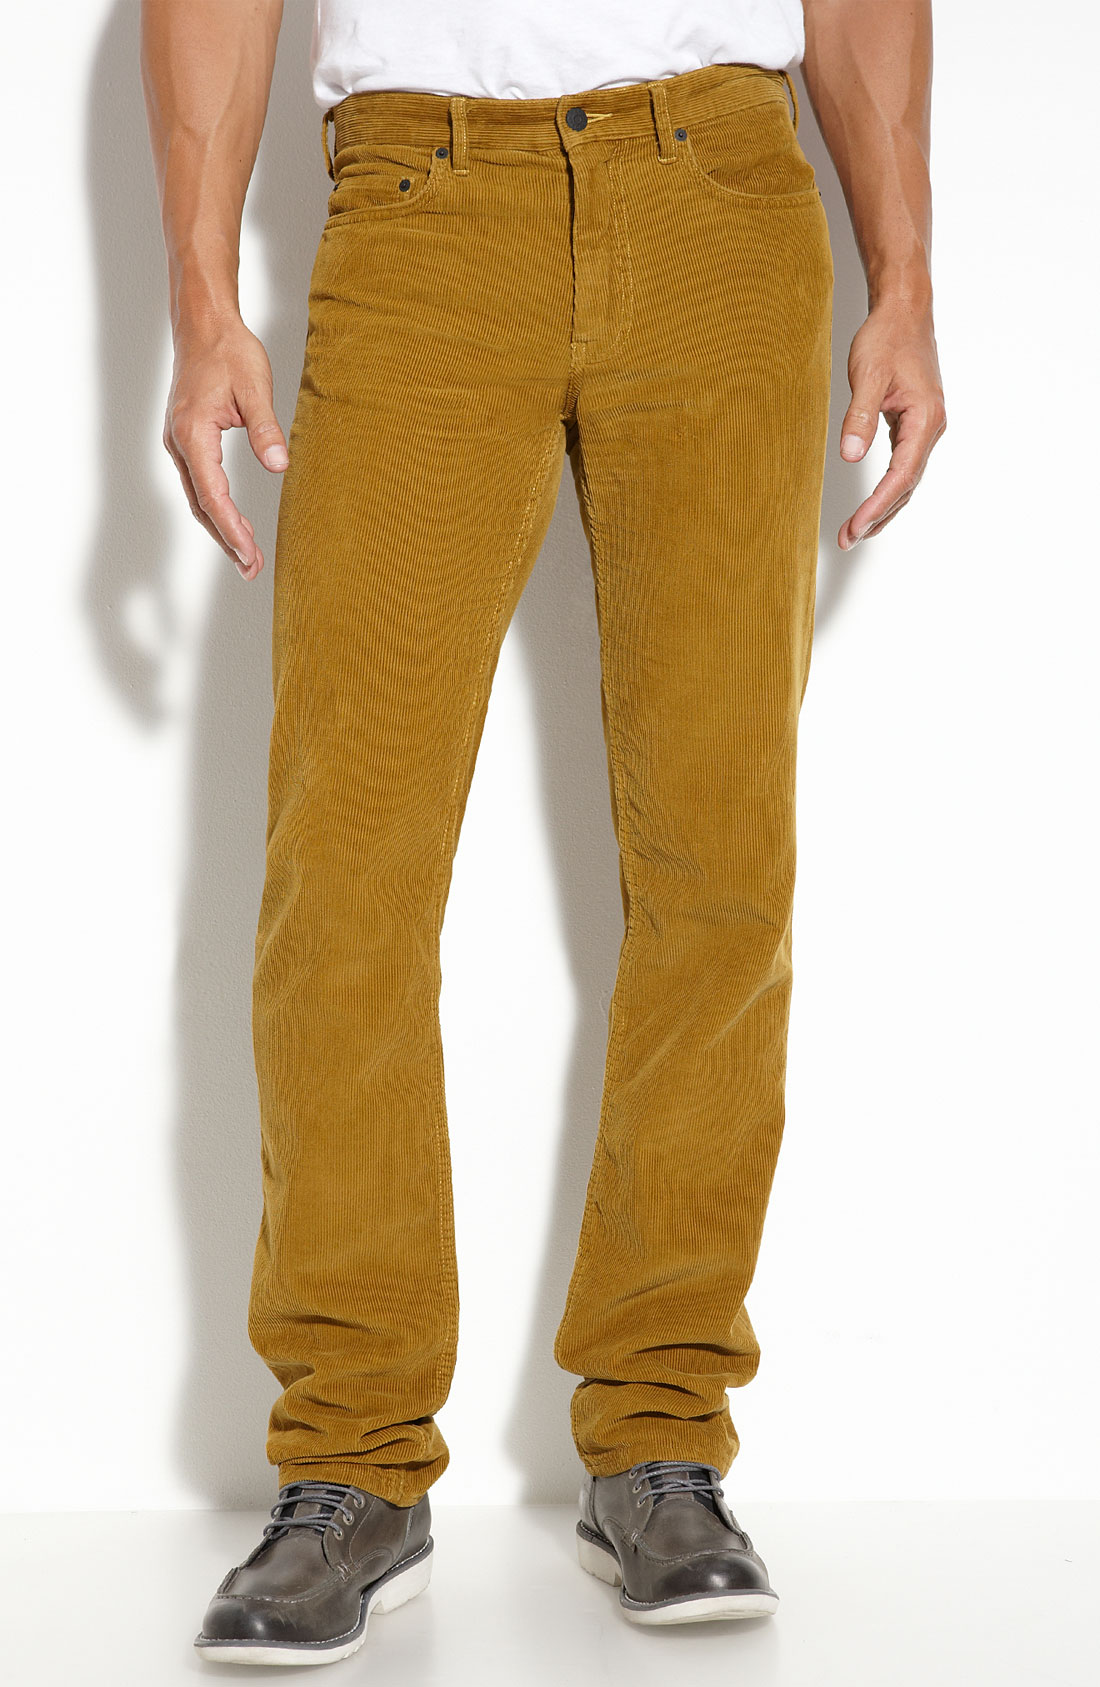 Marc by marc jacobs Straight Leg Corduroy Pants in Metallic for ...